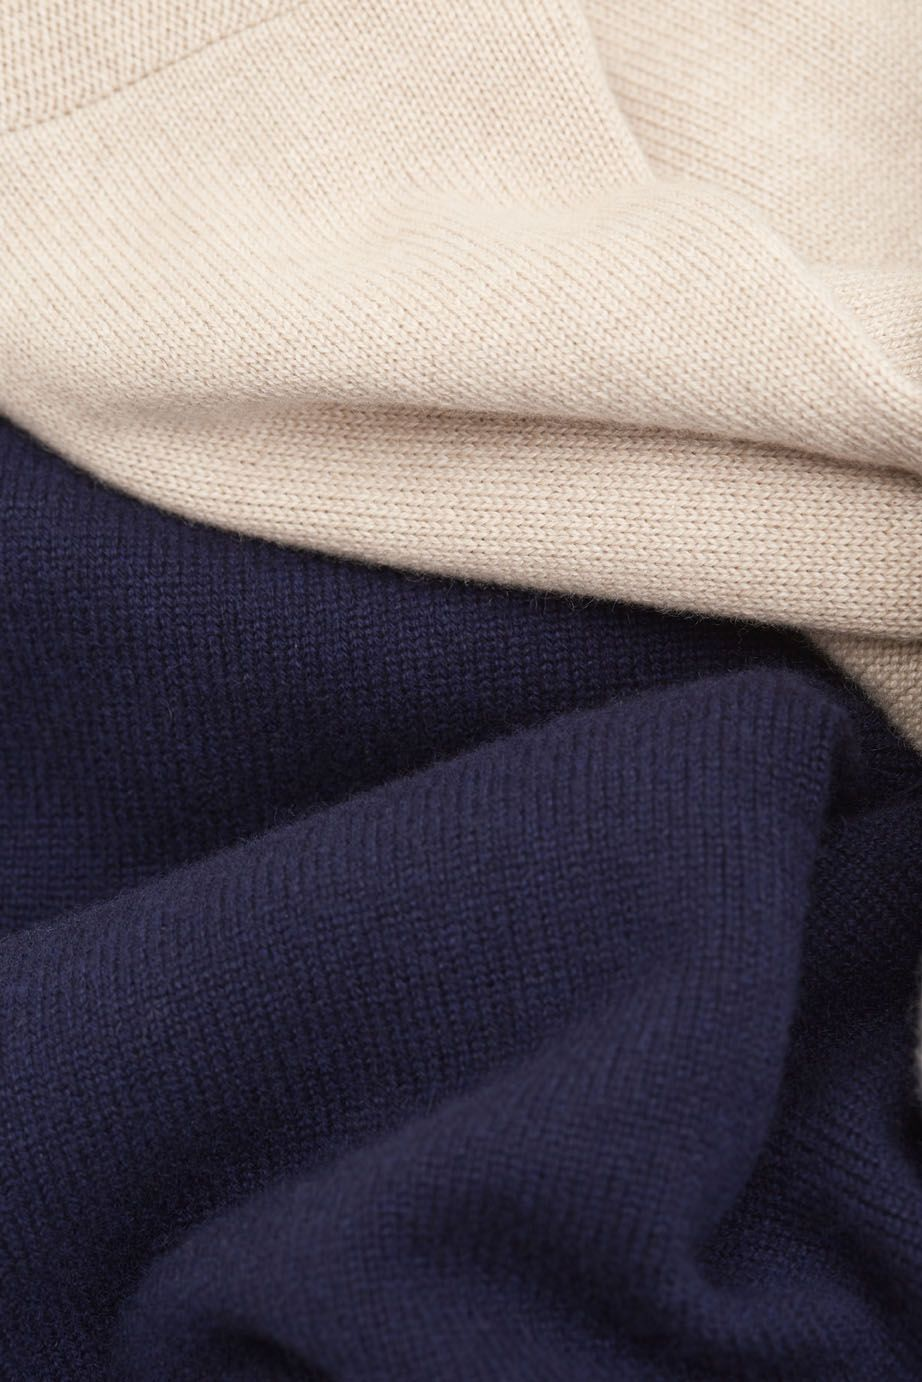 Cashmere can also be put into the washing machine at a